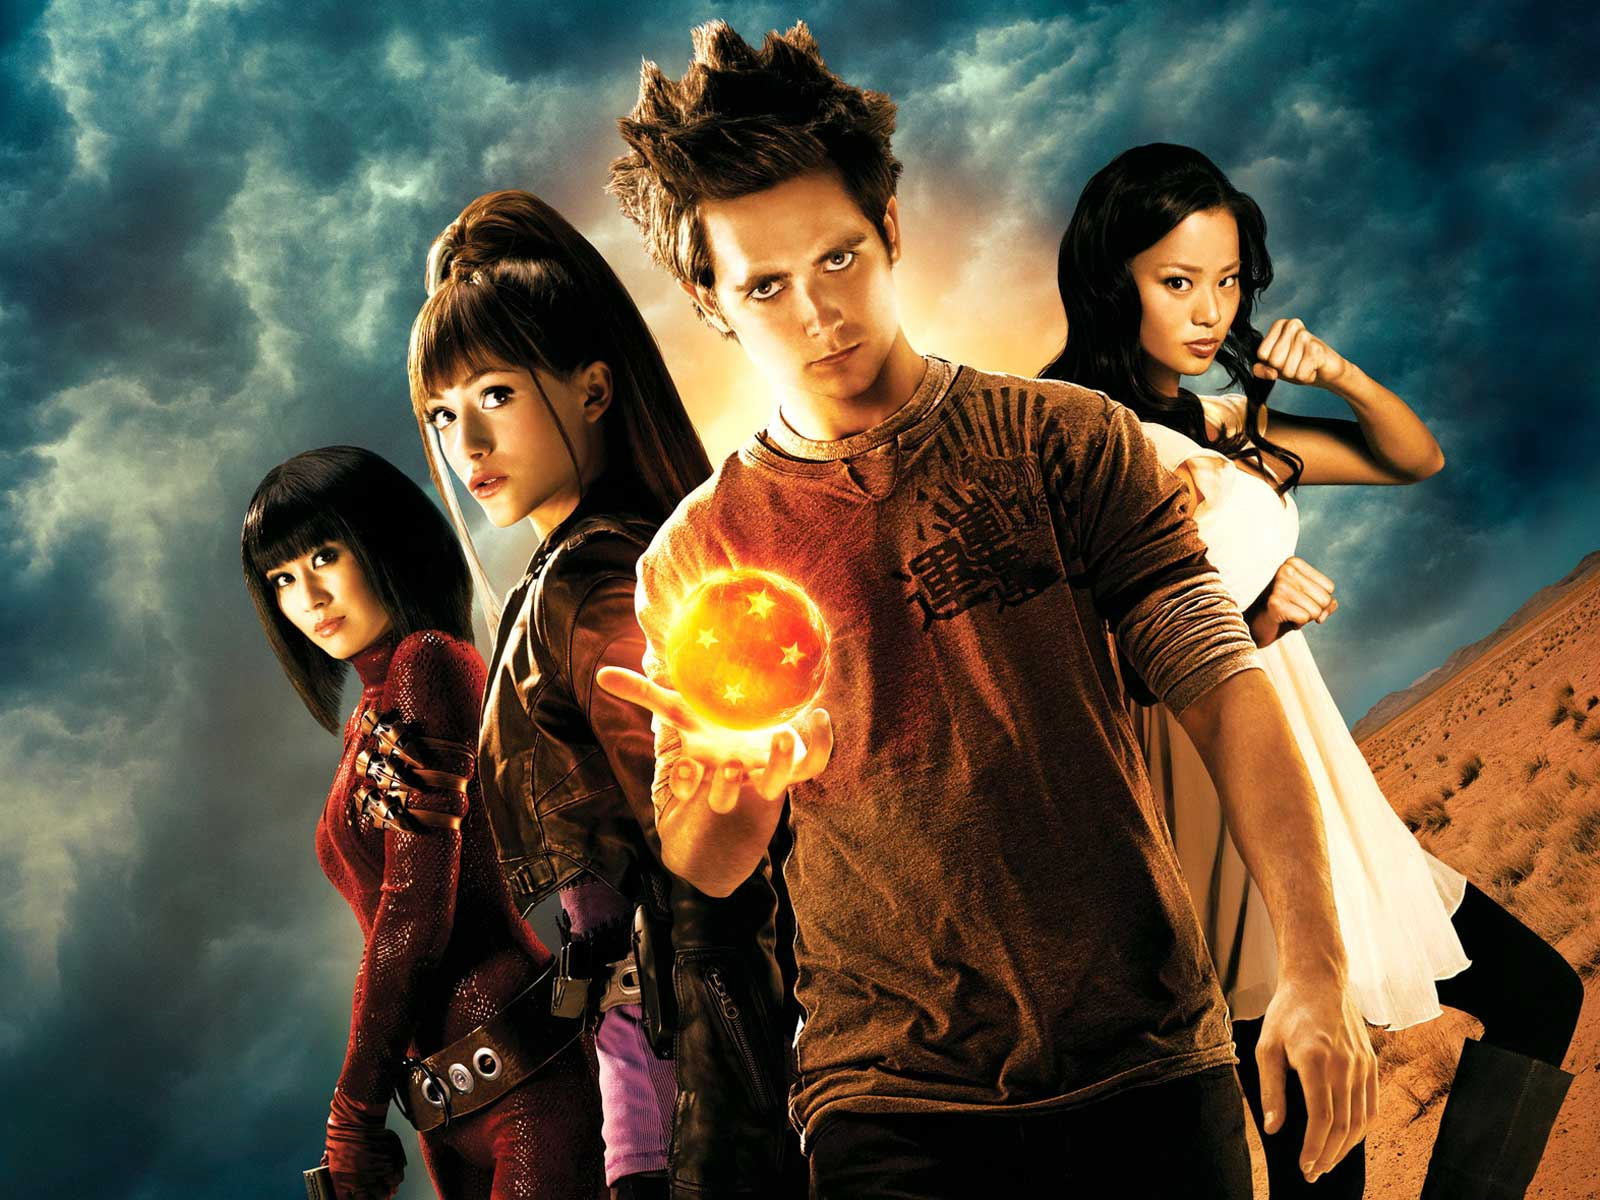 honest-trailer-for-dragonball-evolution.jpg